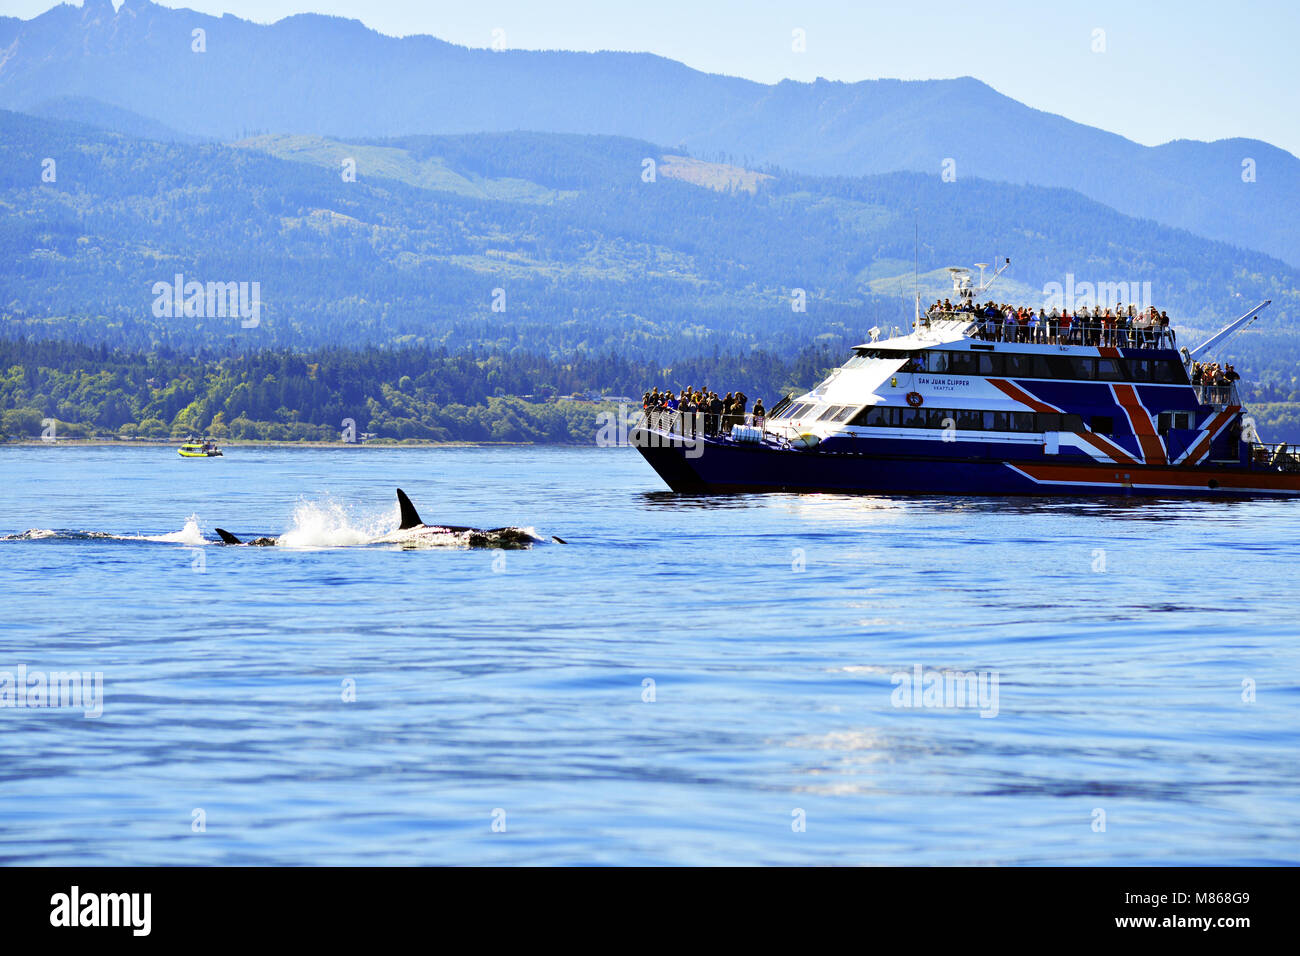 Whale watching off the coast of Canada - Stock Image